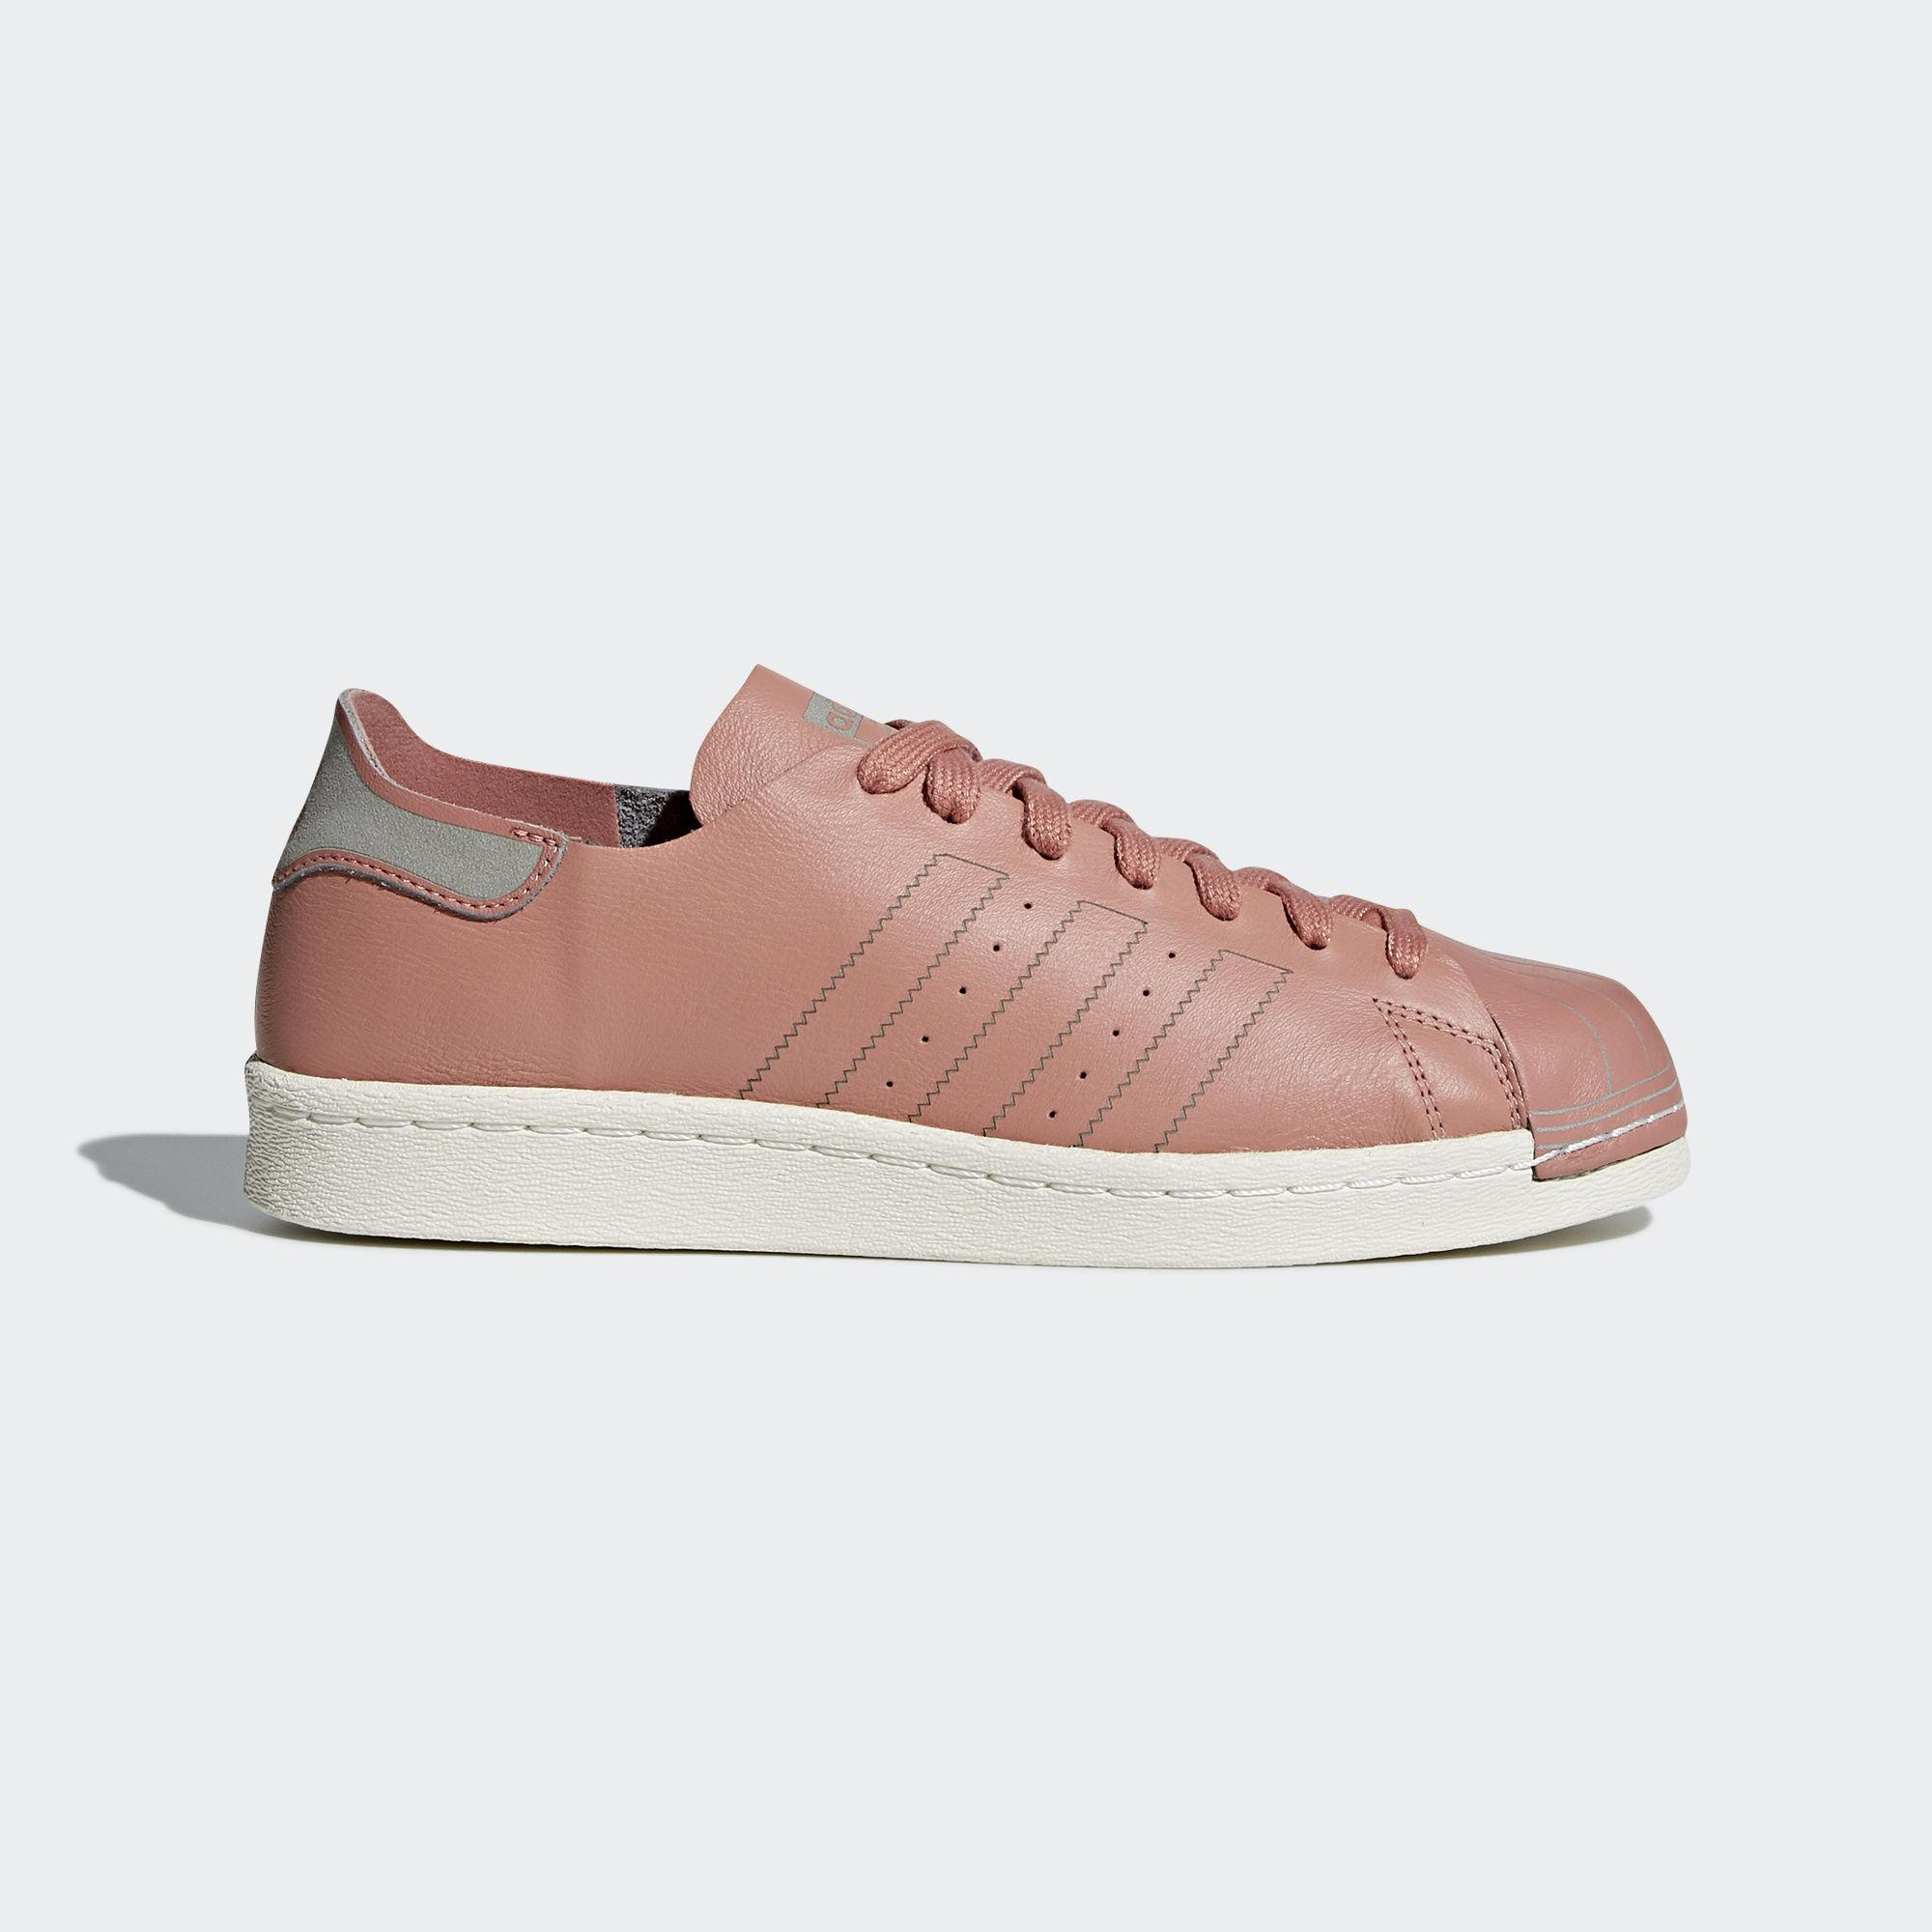 159a38ee797 adidas Superstar 80s Decon Shoes in Pink - Lyst